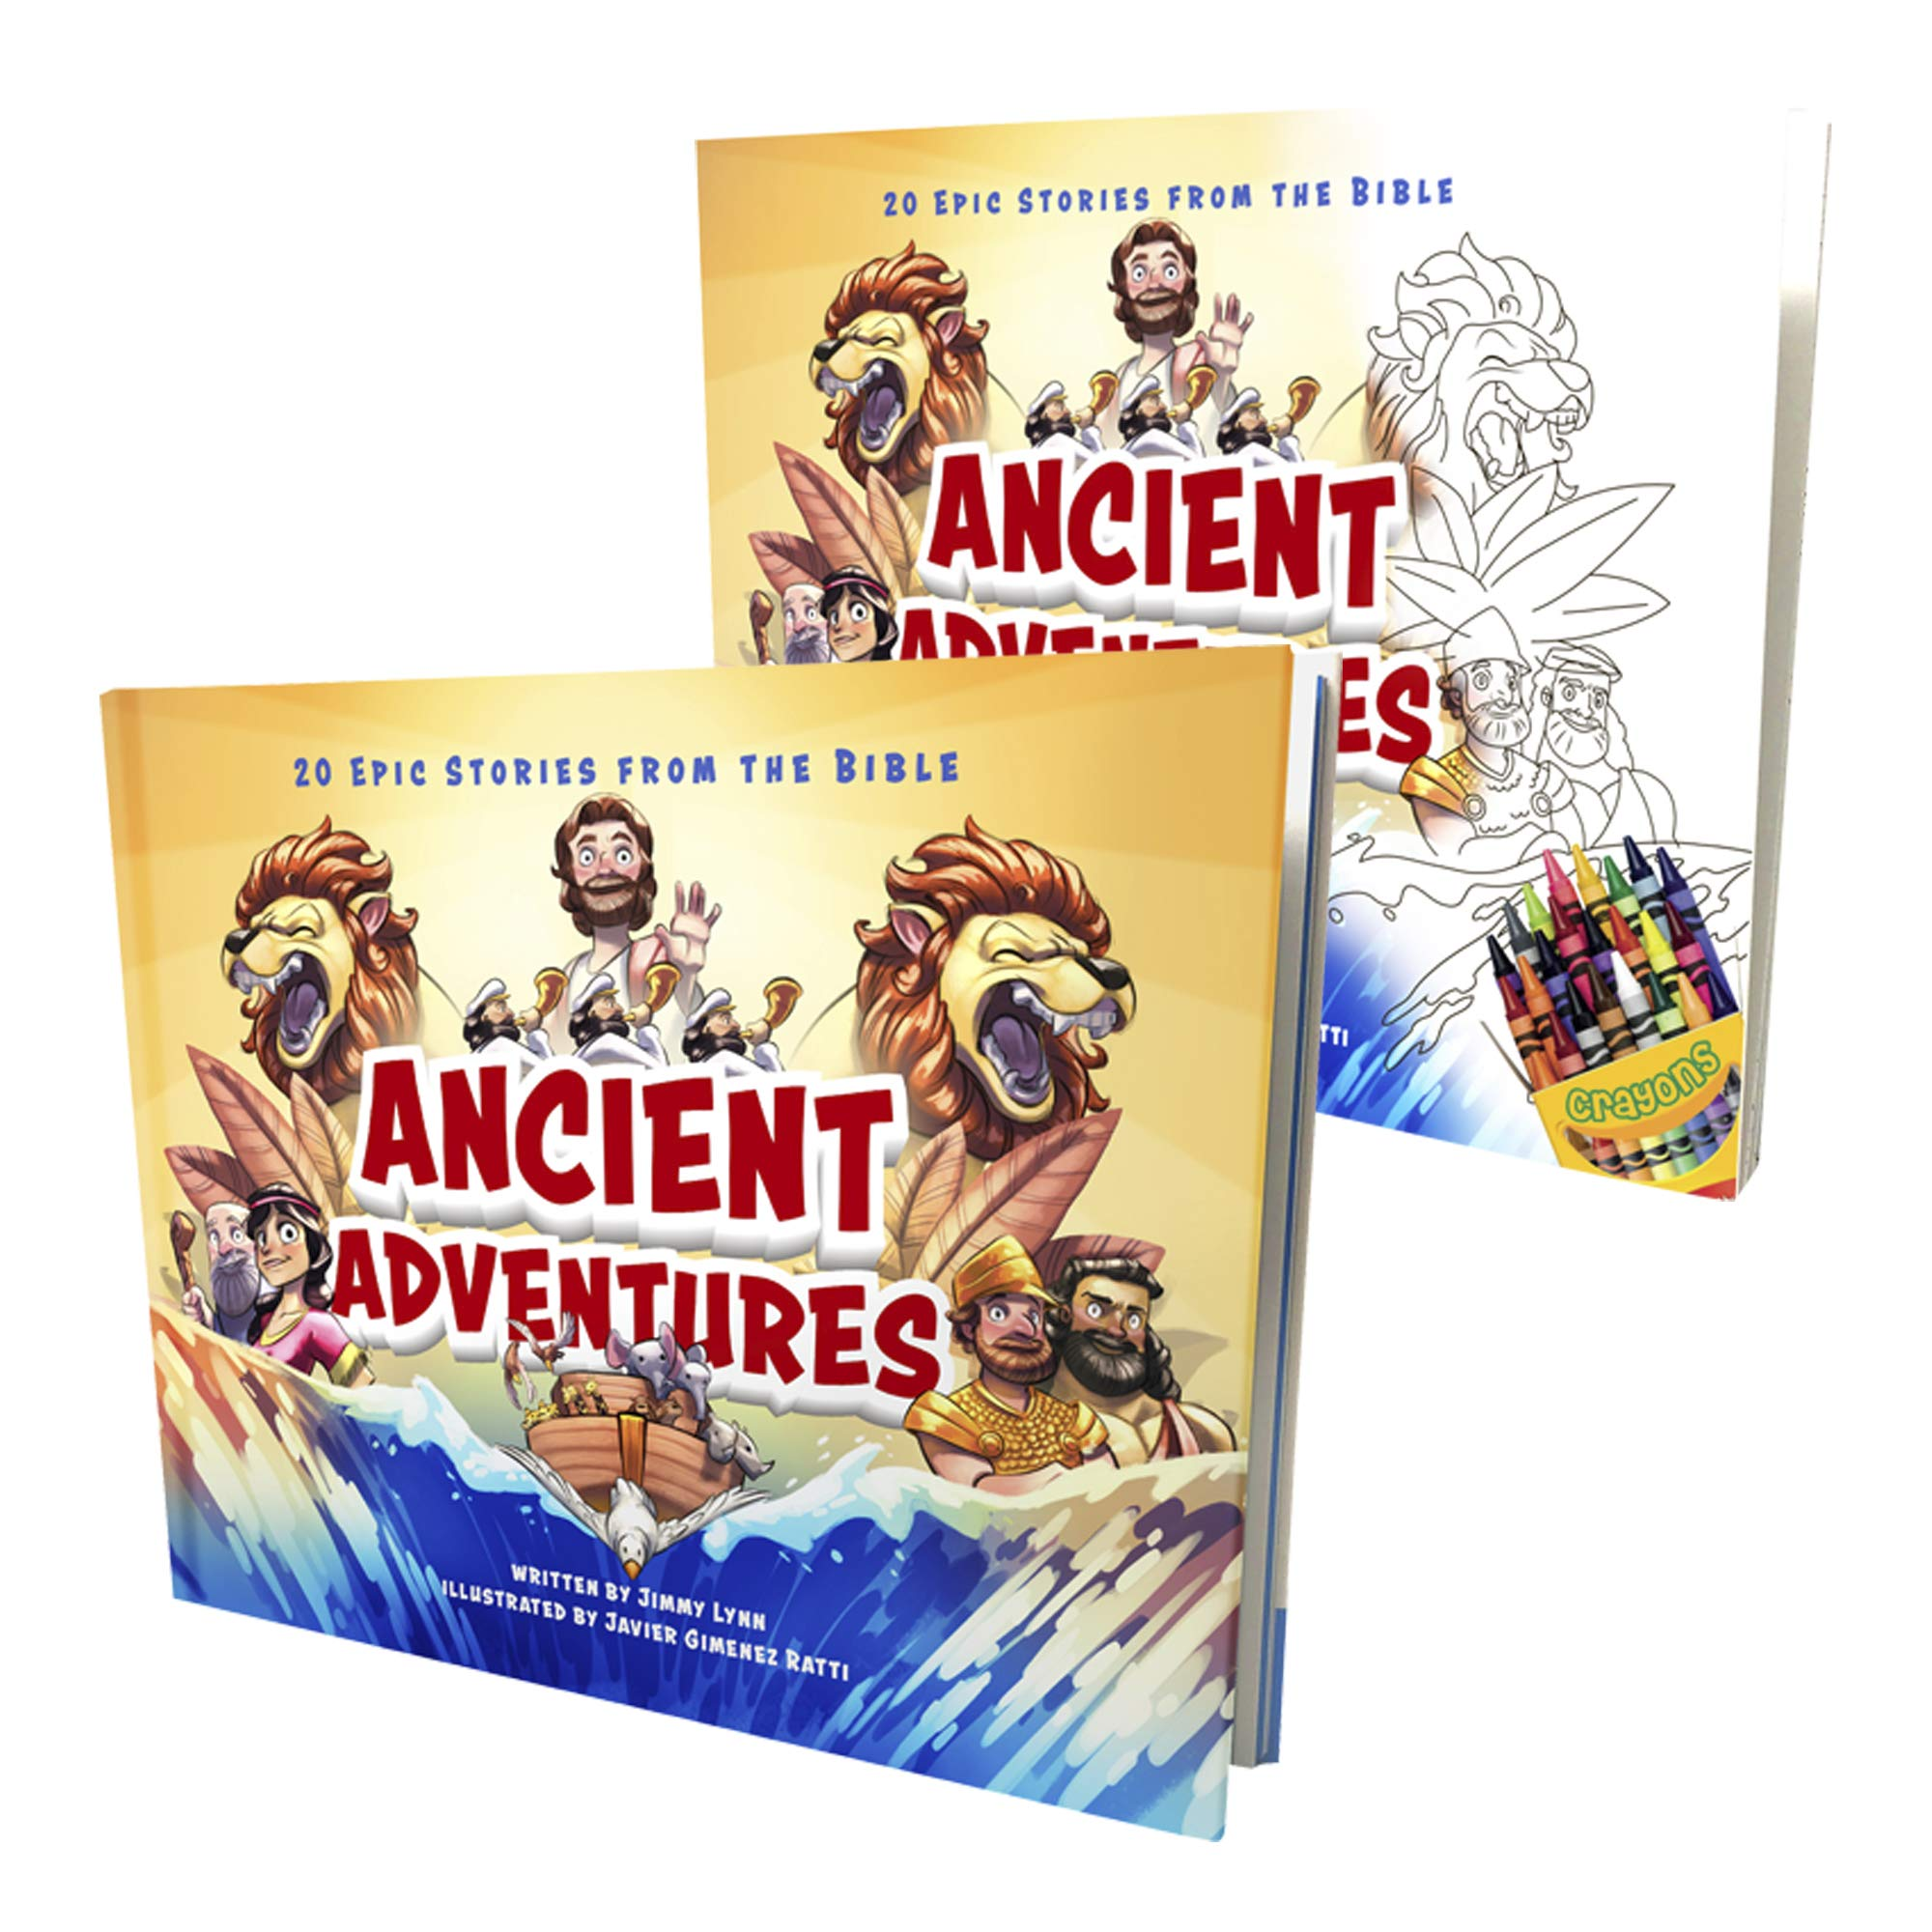 Ancient Adventures: 20 Epic Stories from The Bible + Coloring Book Edition for Kids - Children's Beginner's Bible & Storybook Fun Way to Bring Color to God's Message by Puppy Dogs and Ice Cream